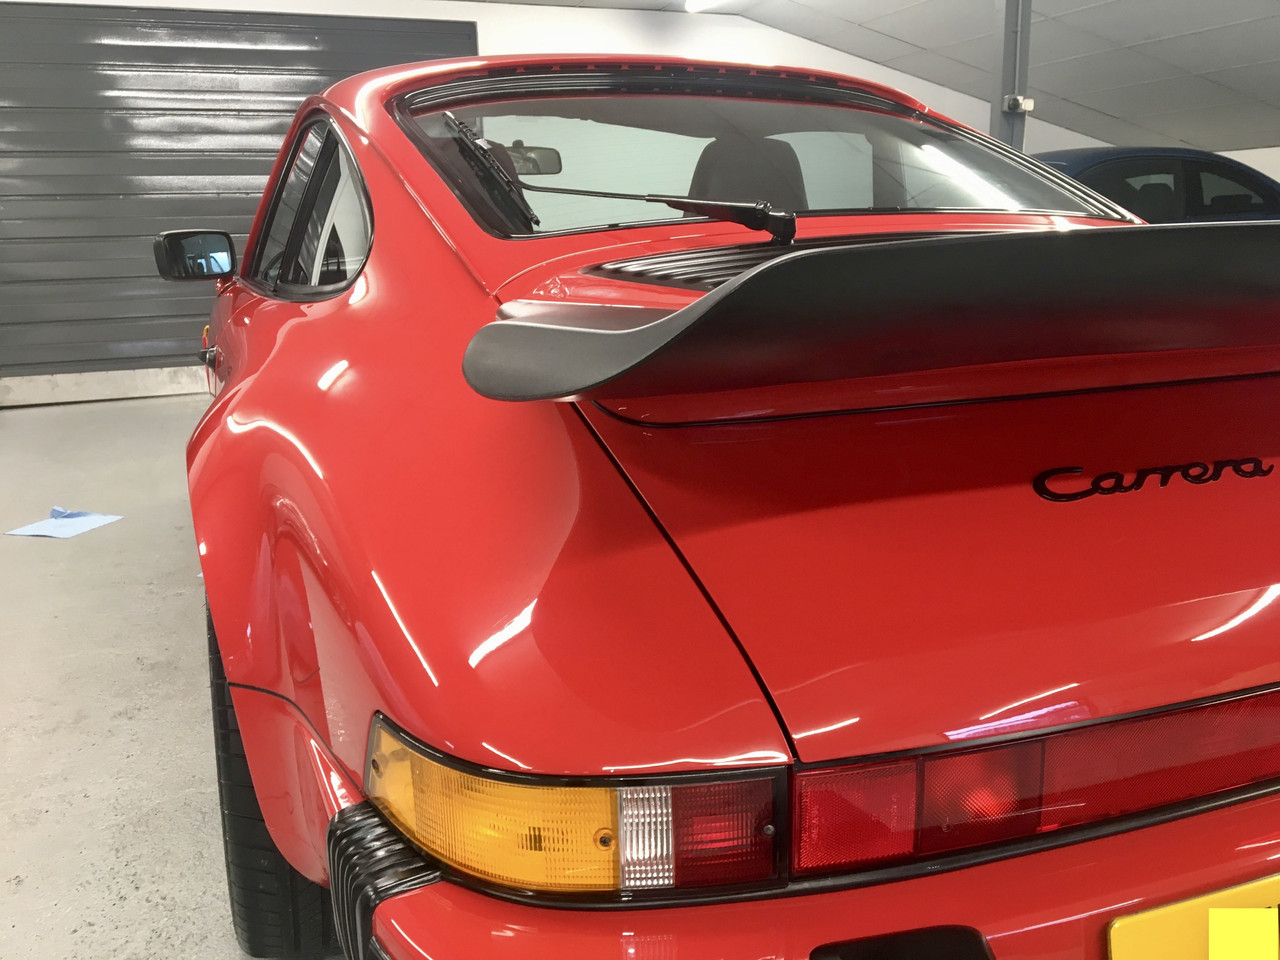 Red Porsche 911 Carrera 1989